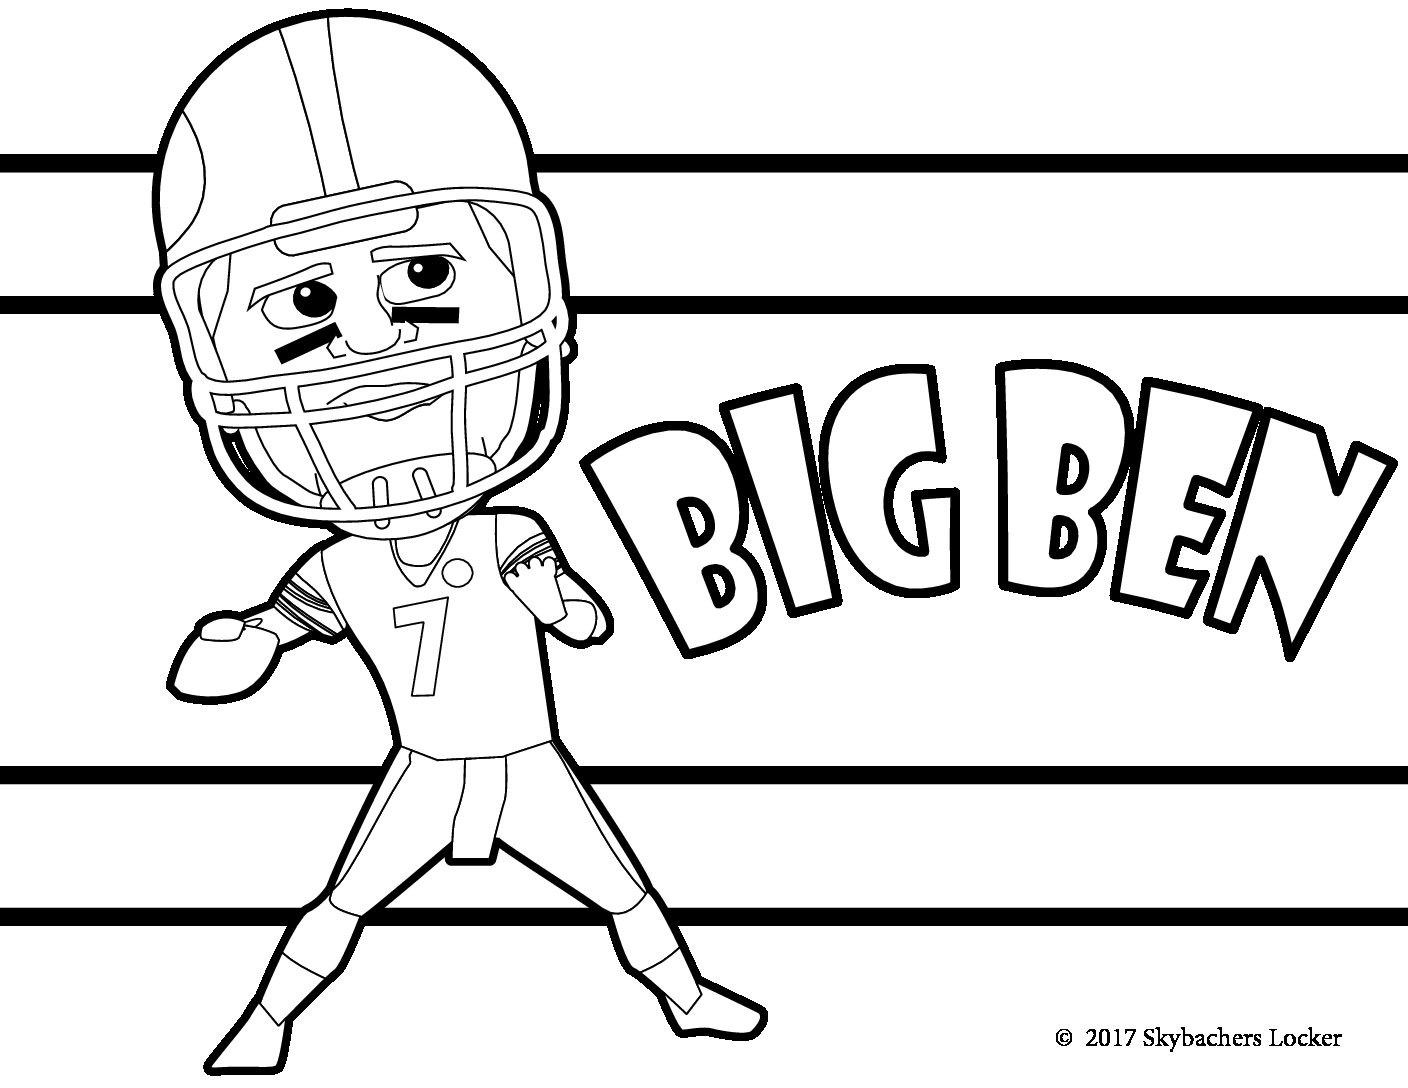 ben roethlisberger coloring page - Steelers Coloring Pages